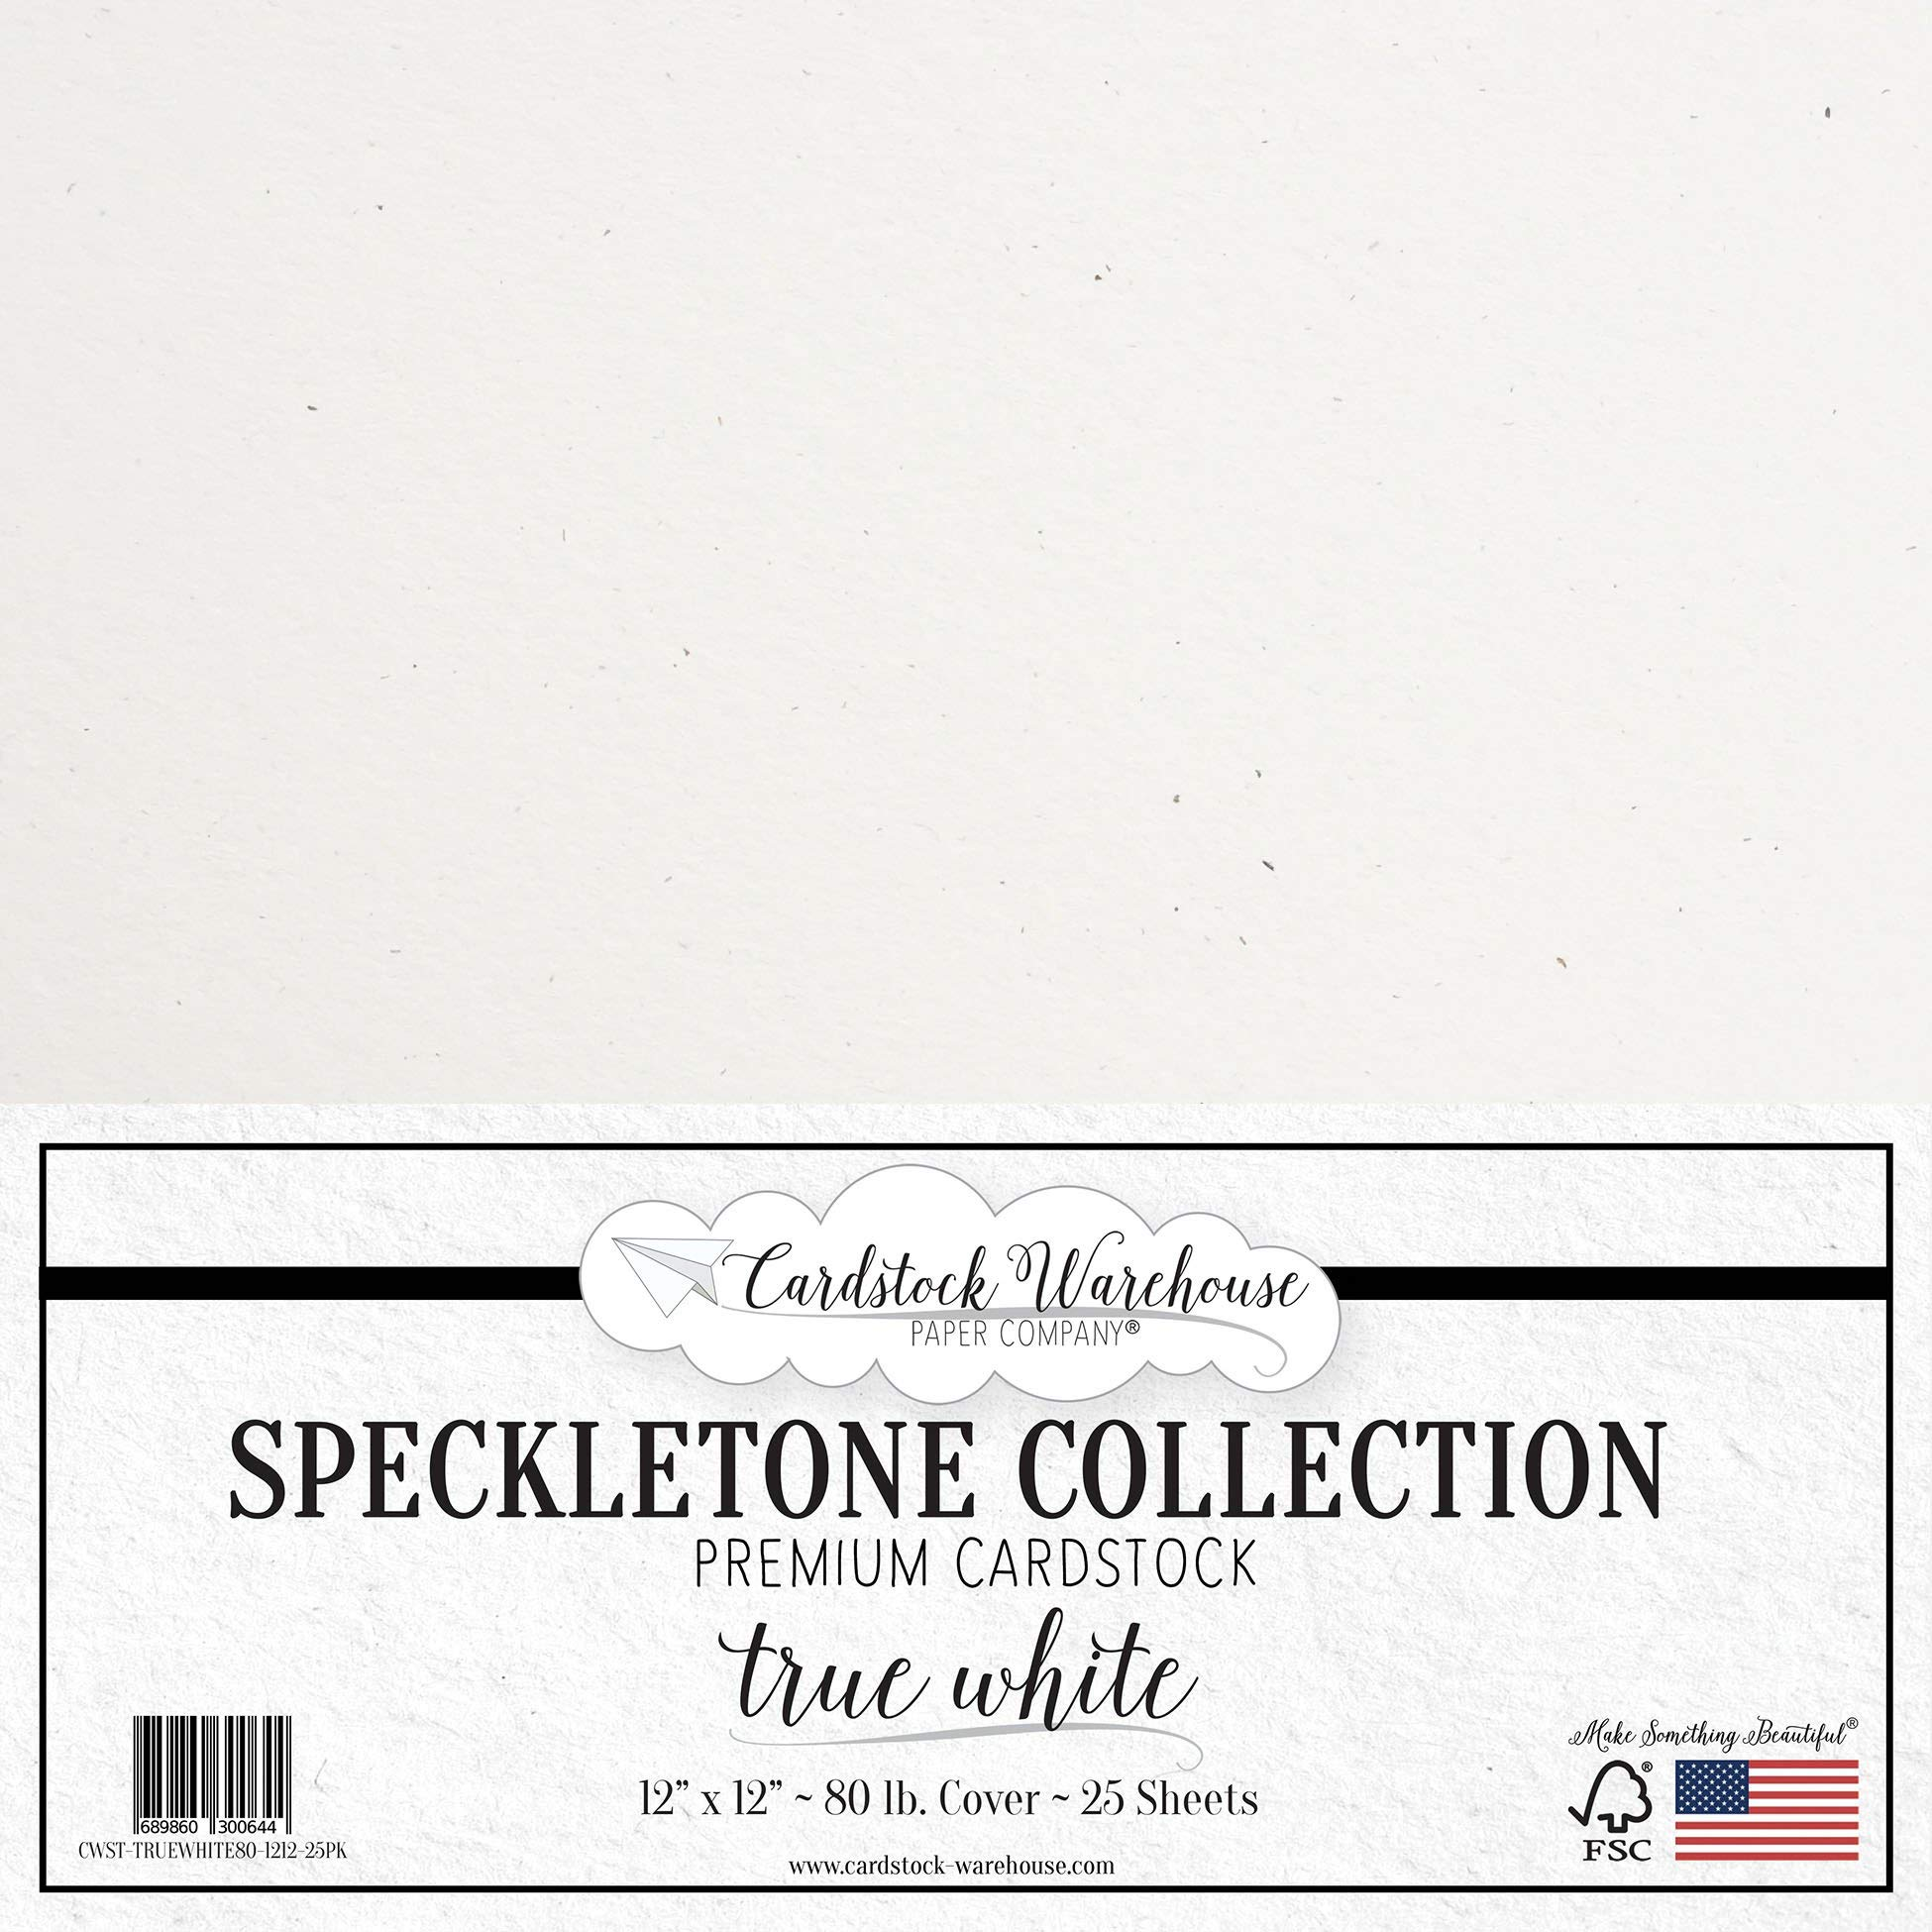 True White Speckletone Recycled Cardstock Paper - 12 x 12 inch - Premium 80 LB. Cover - 25 Sheets